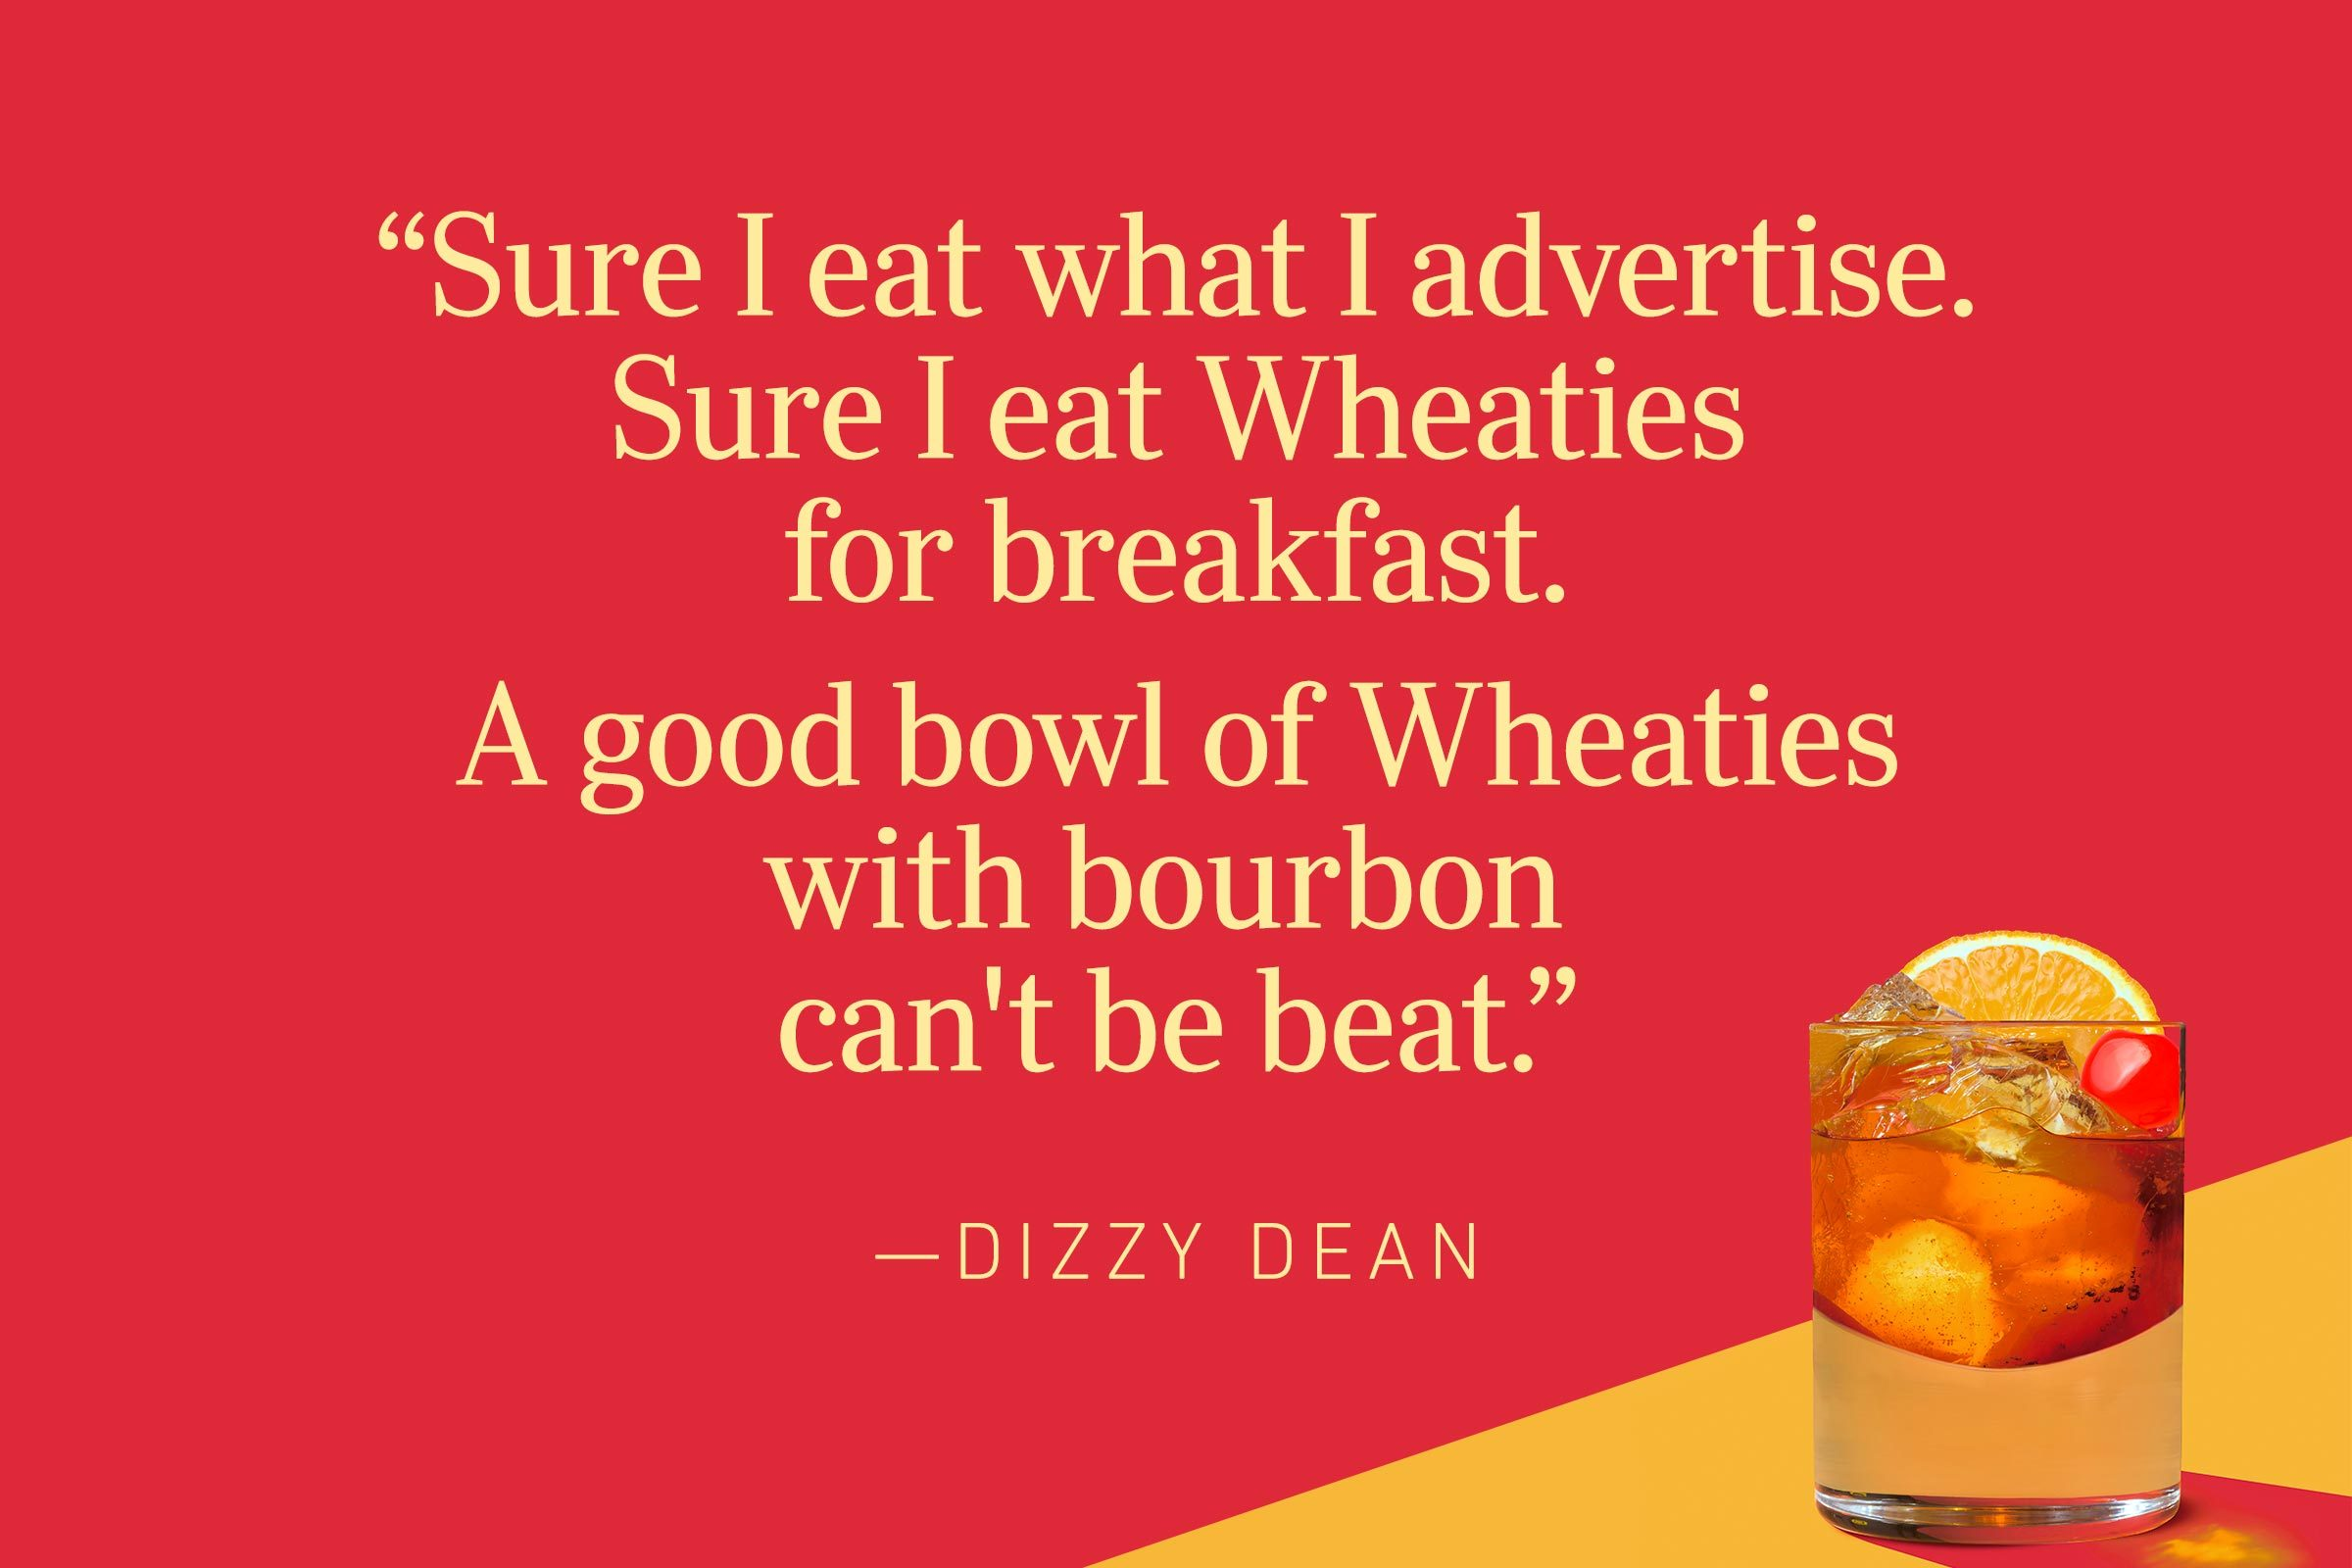 """""""Sure I eat what I advertise. Sure I eat Wheaties for breakfast. A good bowl of Wheaties with bourbon can't be beat.""""—Dizzy Dean"""